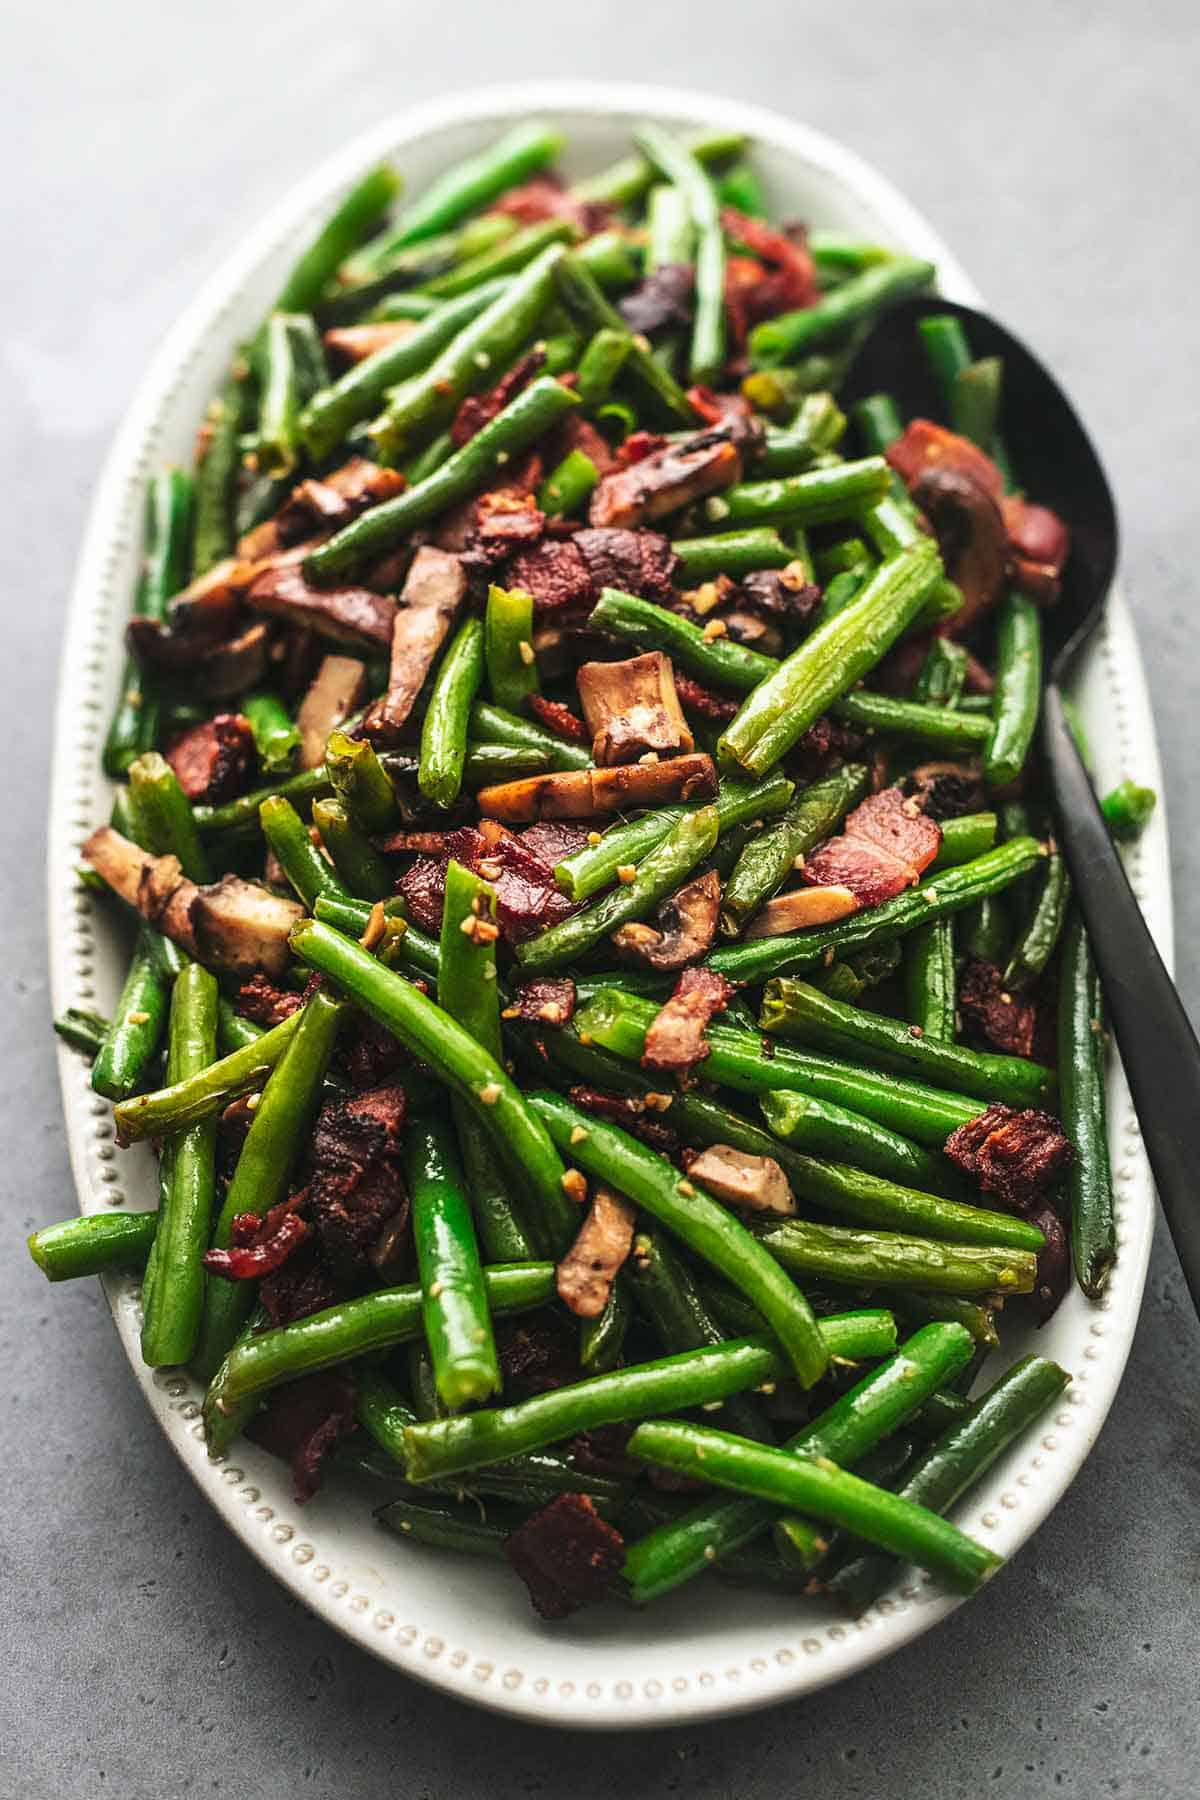 coclose up of green beans with mushrooms and bacon with a serving spoon on a platter.